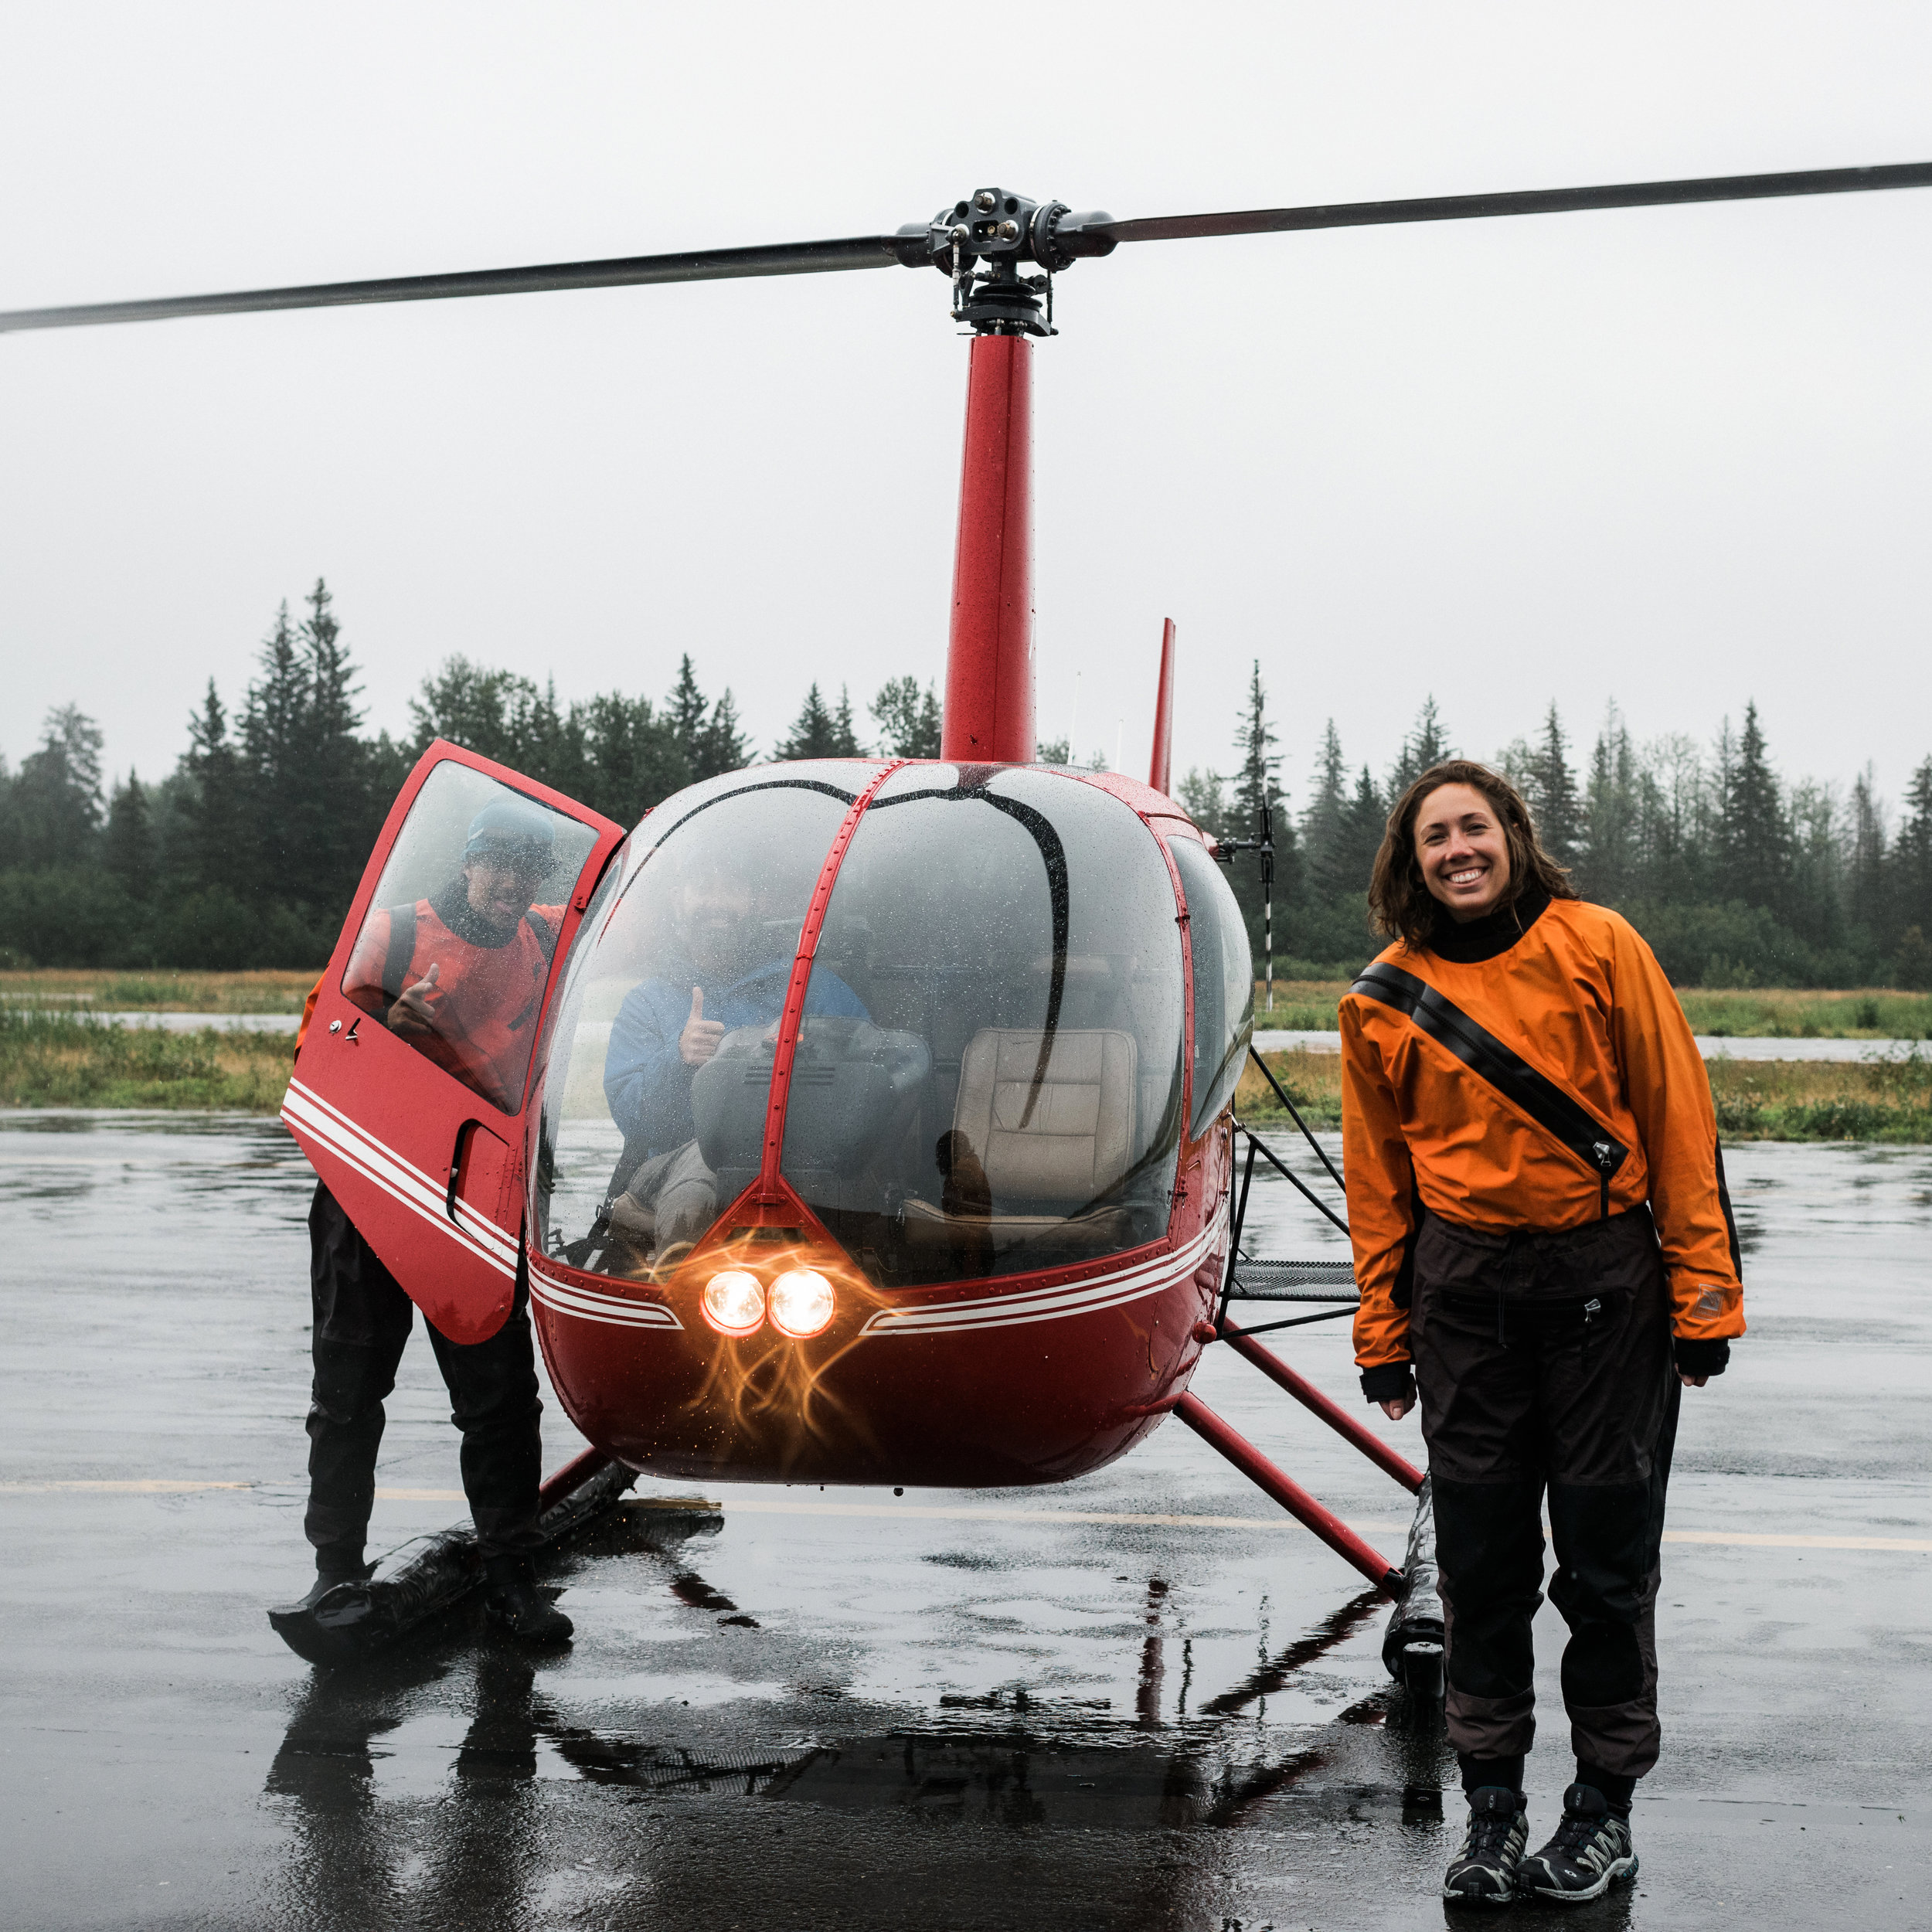 ALASKA_TaraShupe_Outdoor_Adventure_DSC_4788.jpg